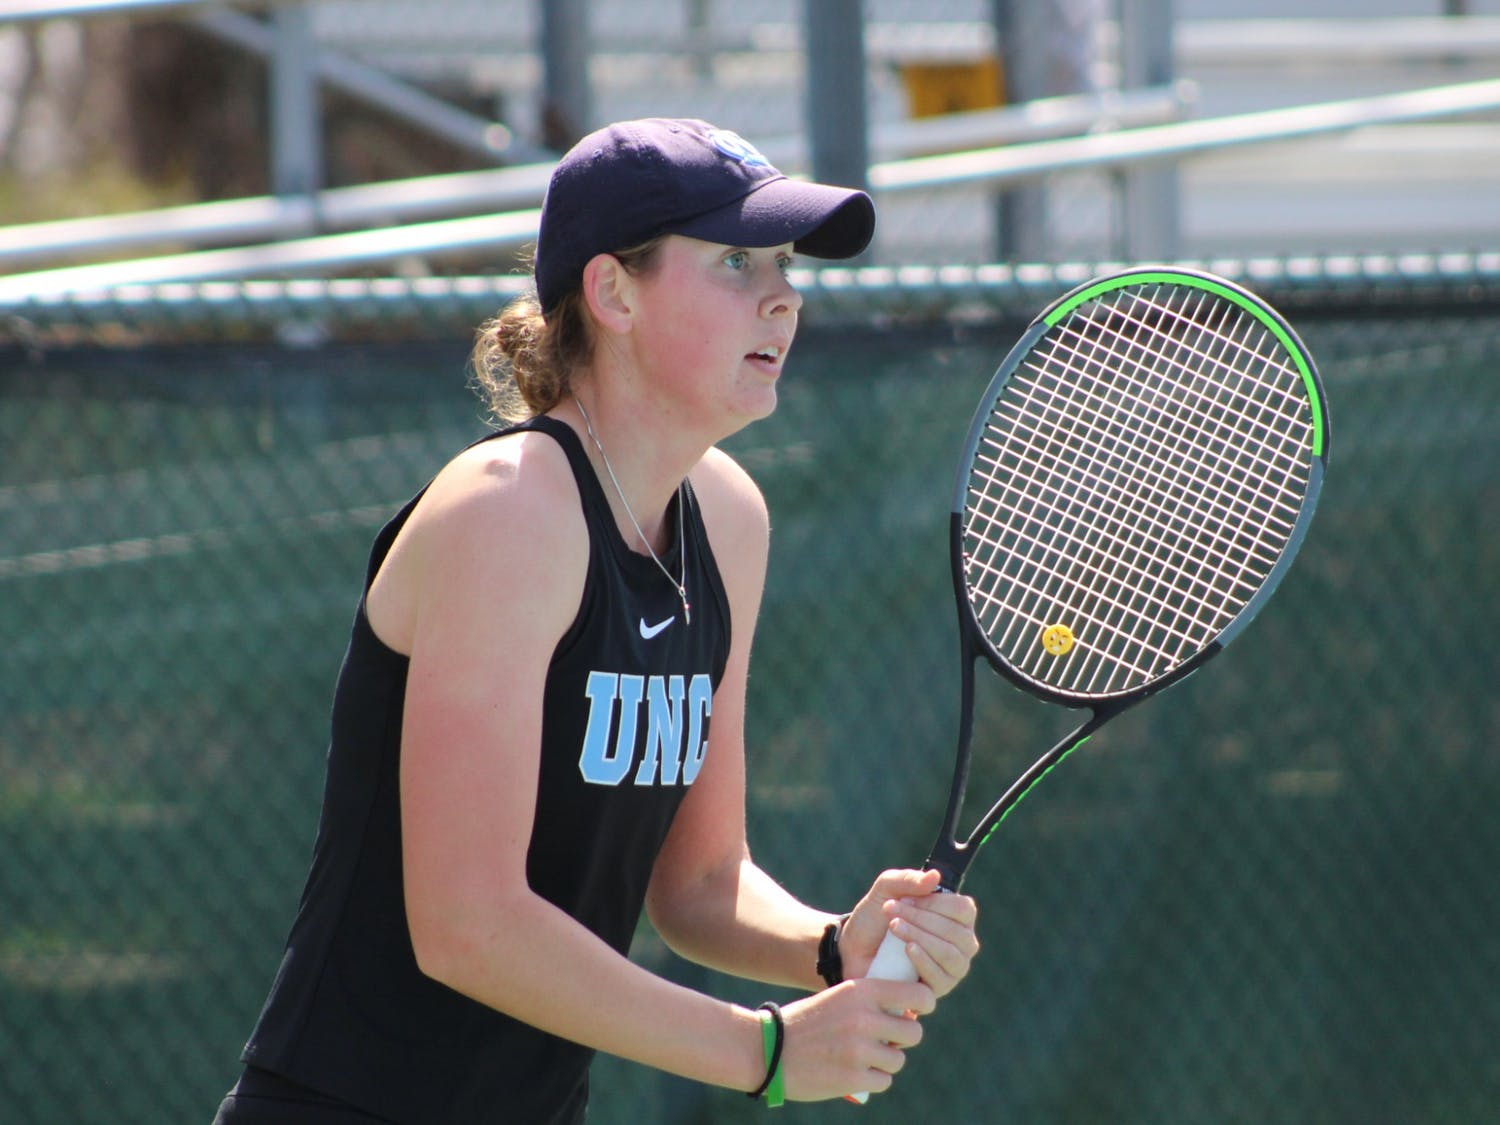 Elizabeth Scotty prepares to return a serve during her victory over Florencia Urrutia from the University of Miami on March 6, 2021.